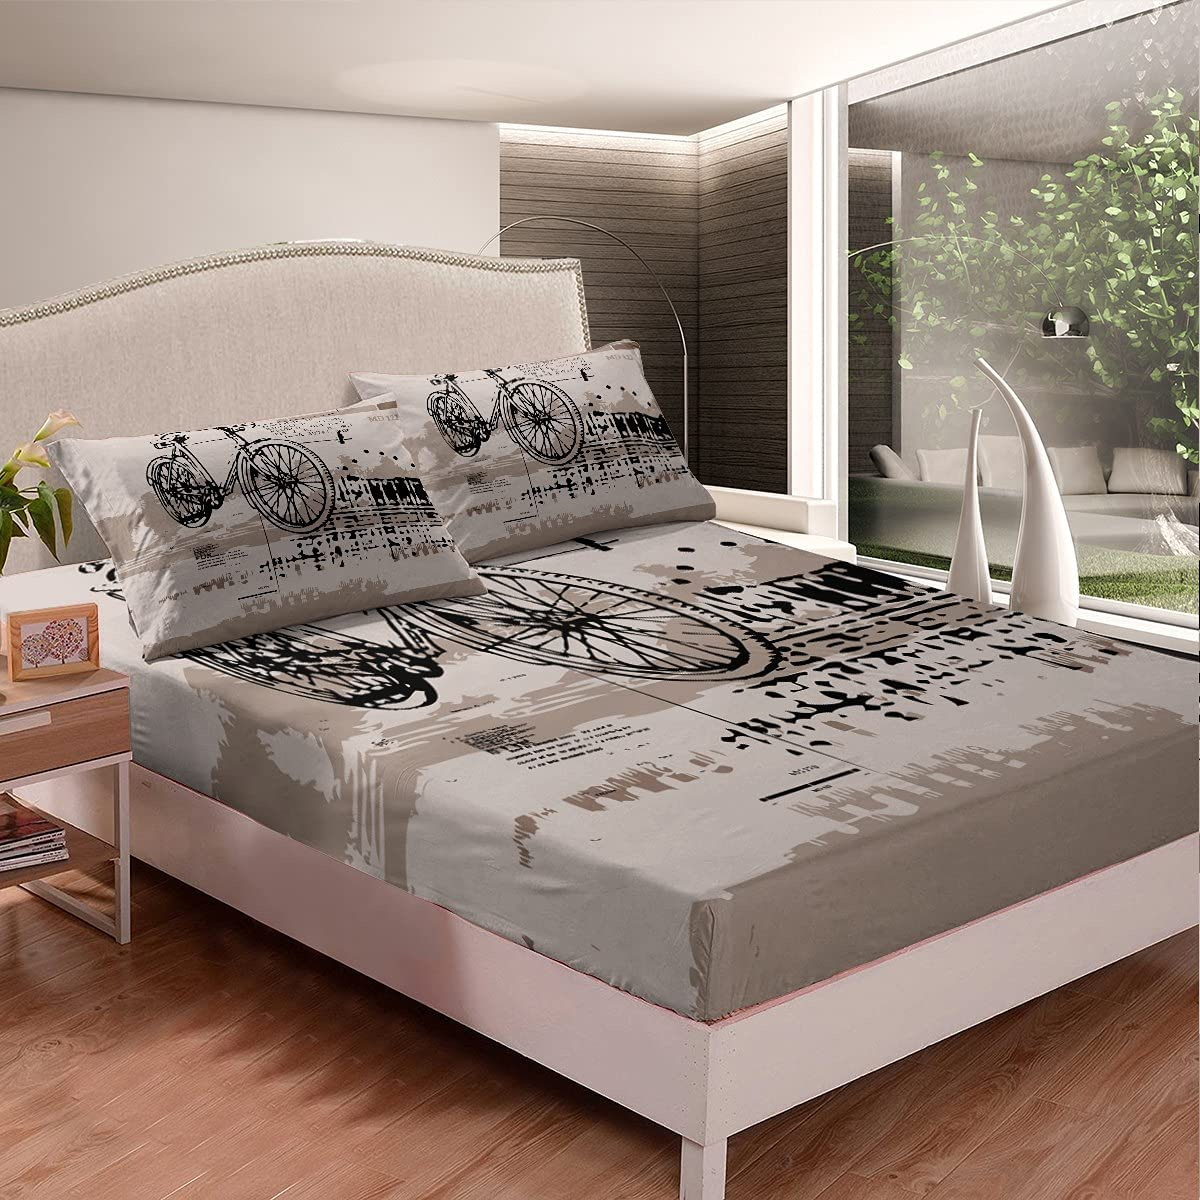 Castle Fairy Bicycle Fitted Sheet 3 Fort Worth Mall Retro O Fits Pieces Many popular brands Mattress